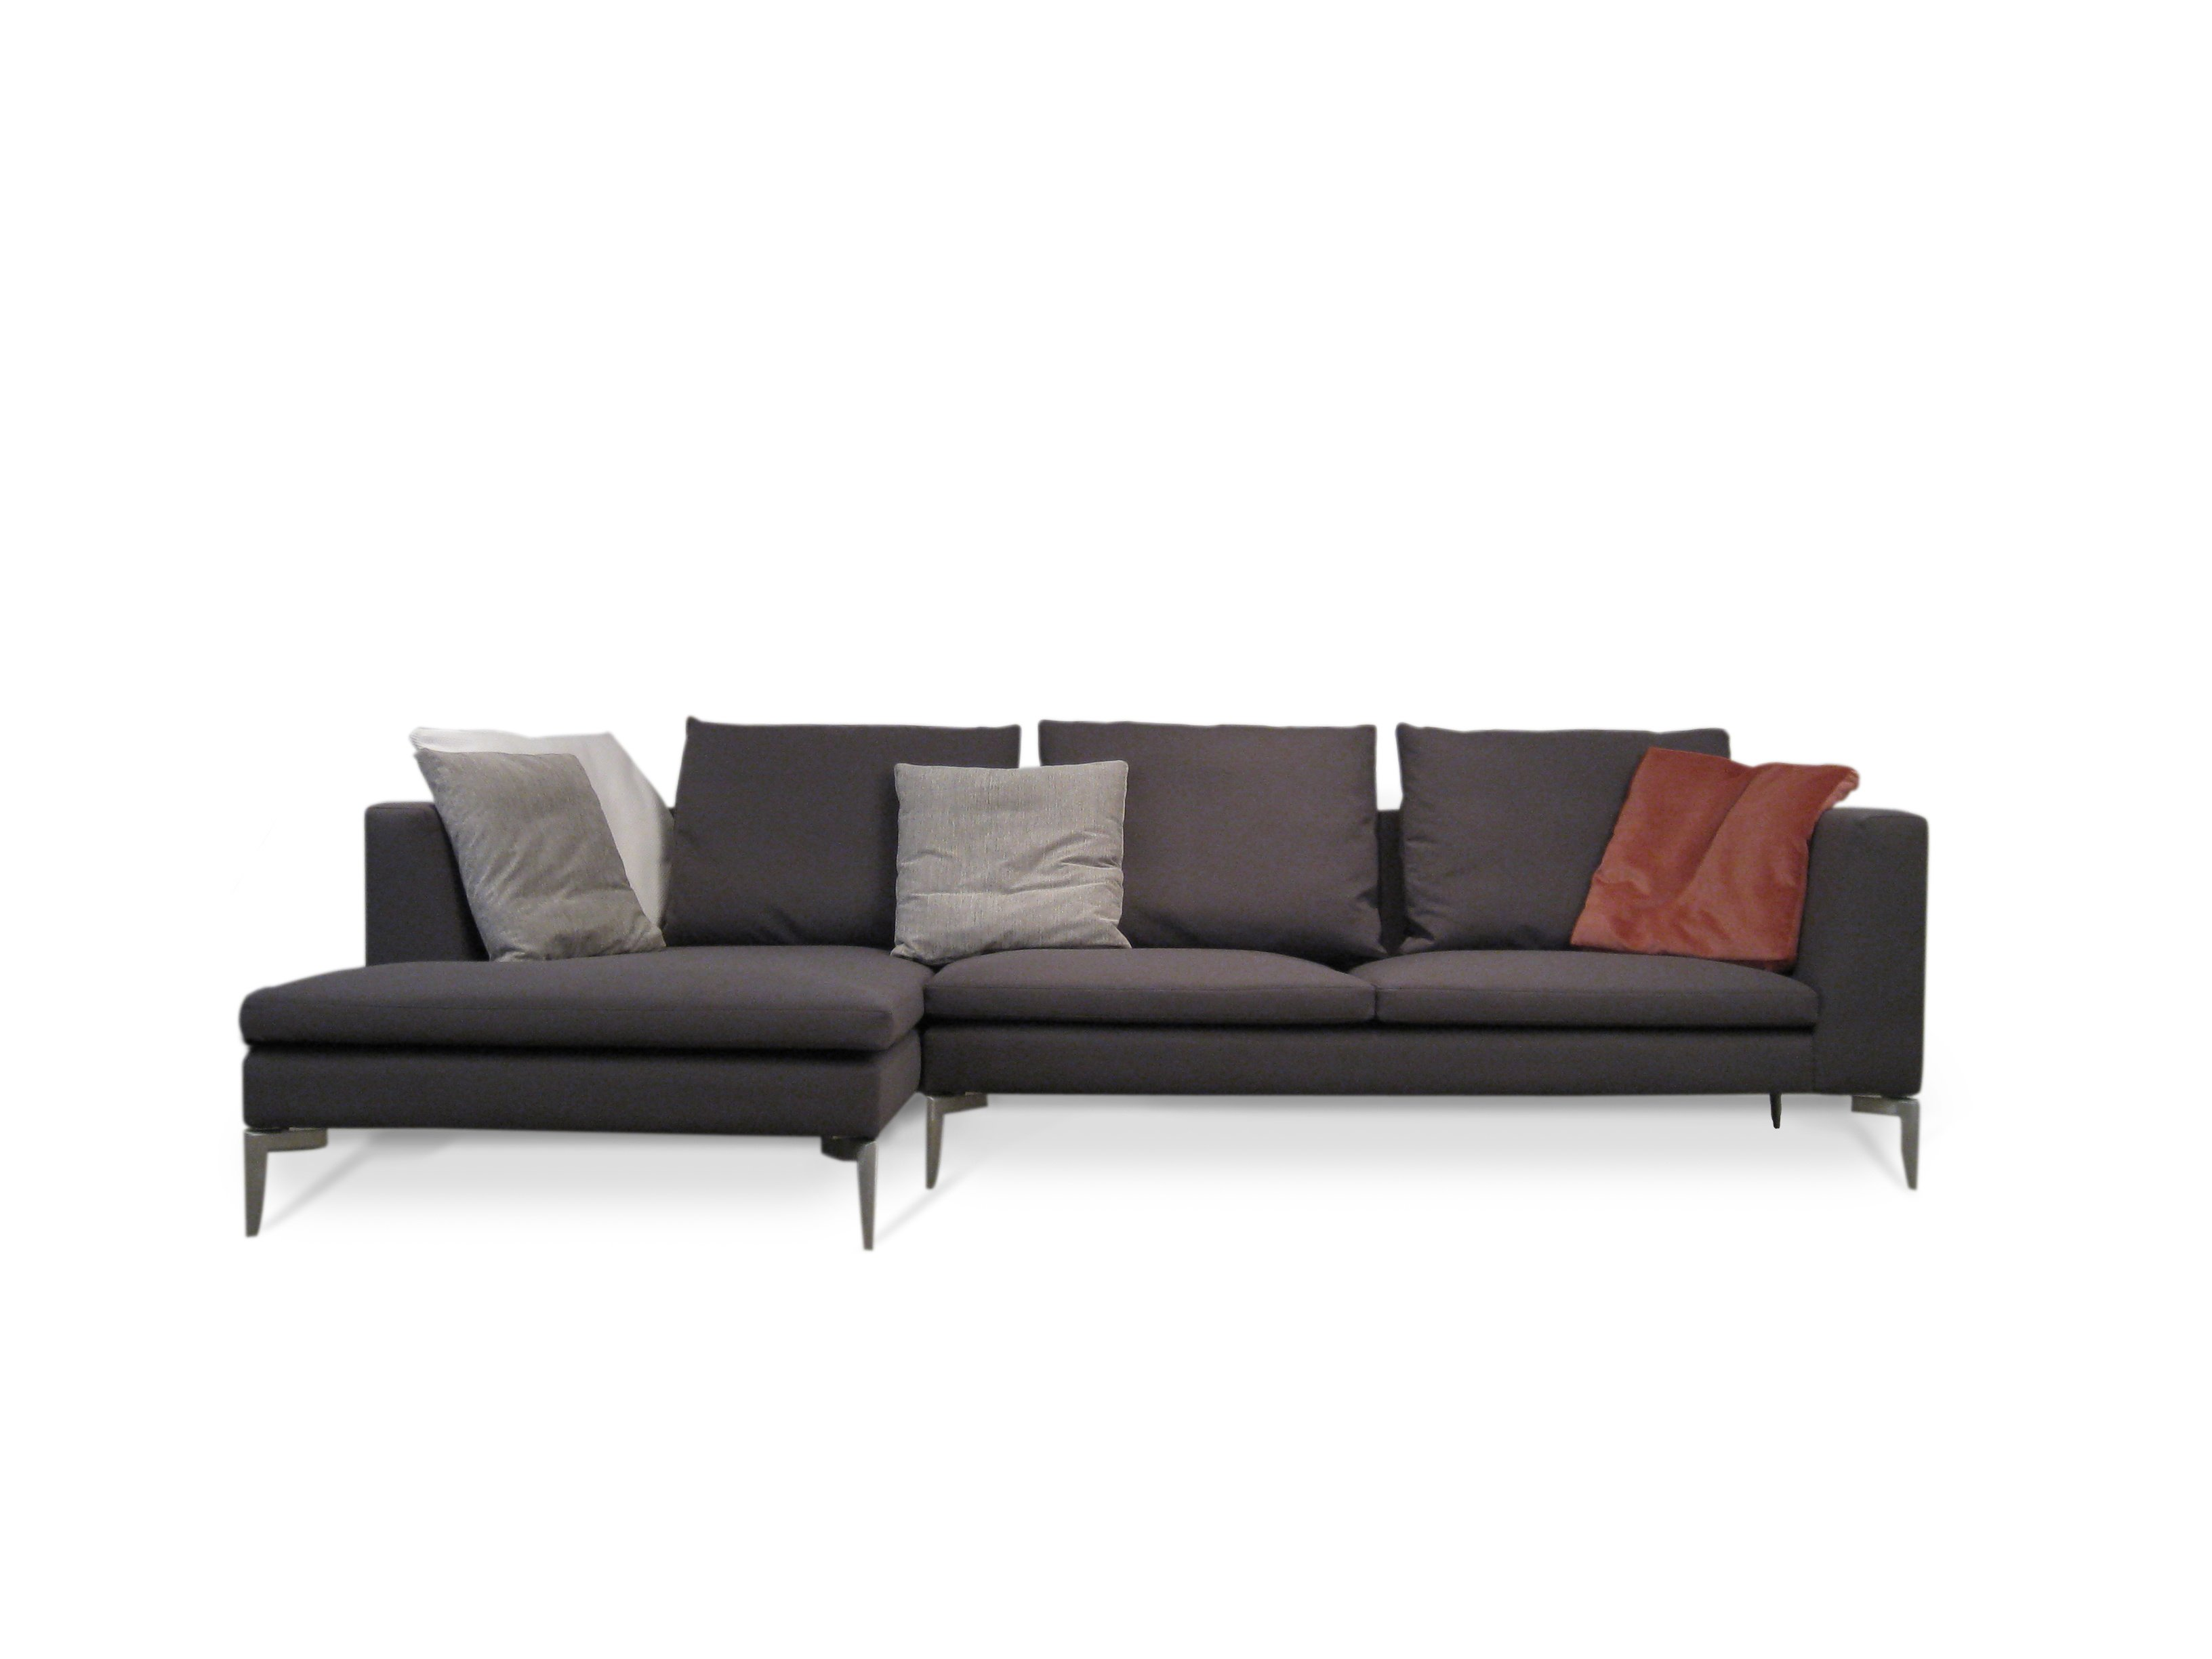 Sofas I Sectionals I Day bed IMultifunctional Sofabed